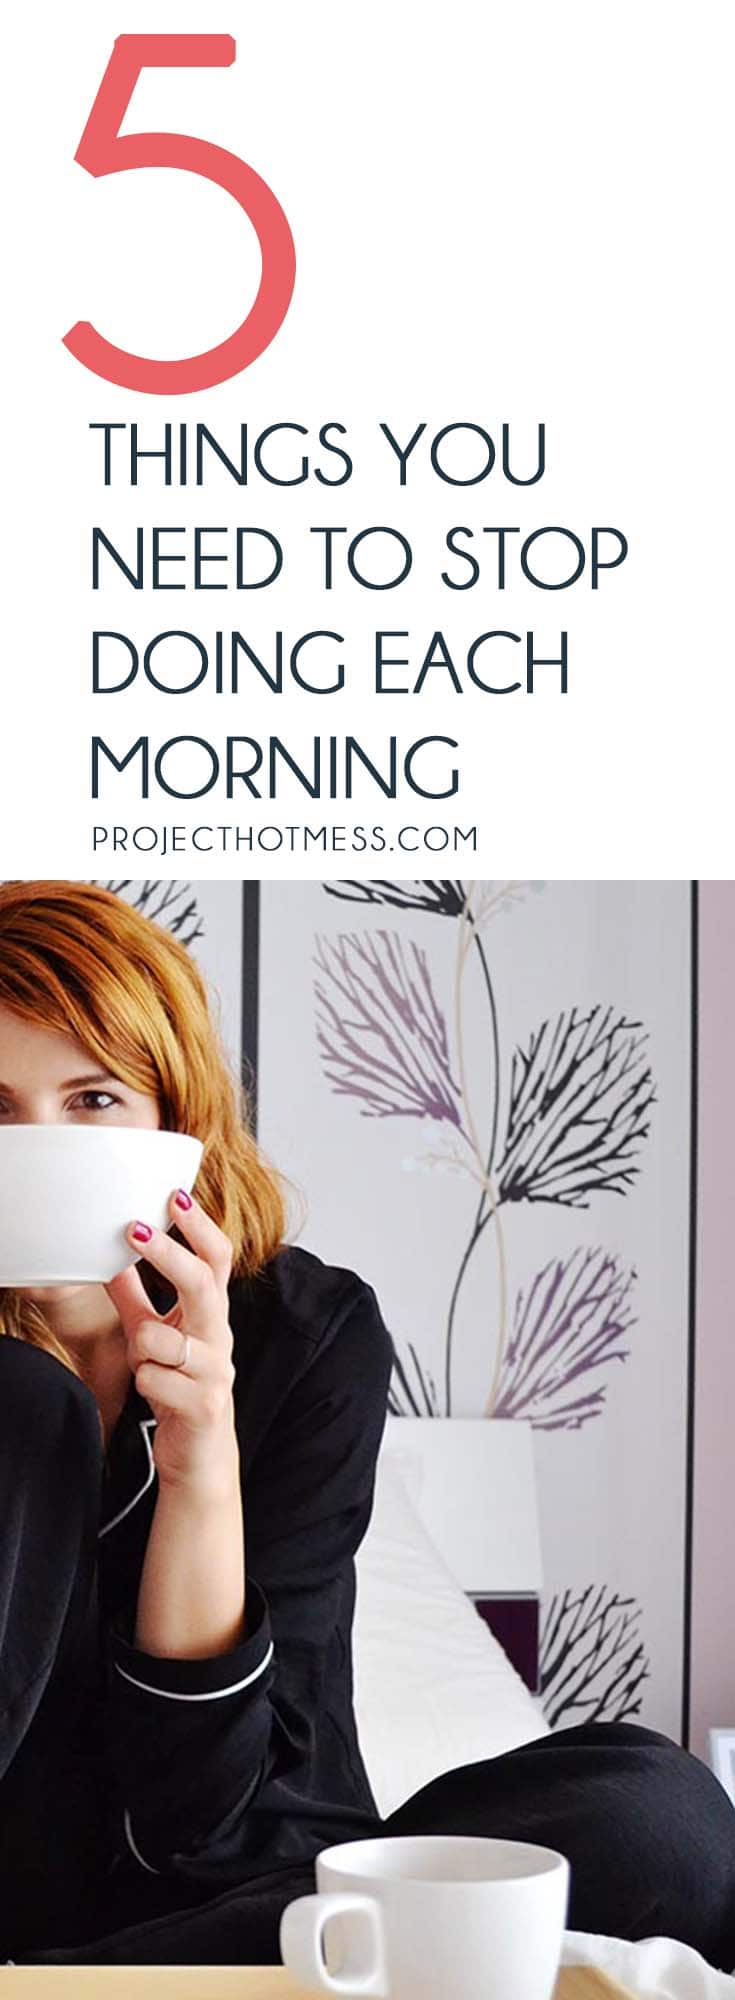 The way we start our mornings can determine how the rest of our day plays out. These are some things you need to stop doing each morning to have a great day. Morning Routine | Routines | Productivity | Productivity Hack | Productivity Tips | Have a Productive Day | Morning Habits | Daily Habits | Start Your Day | Organisation | Entrepreneur | Be Productive